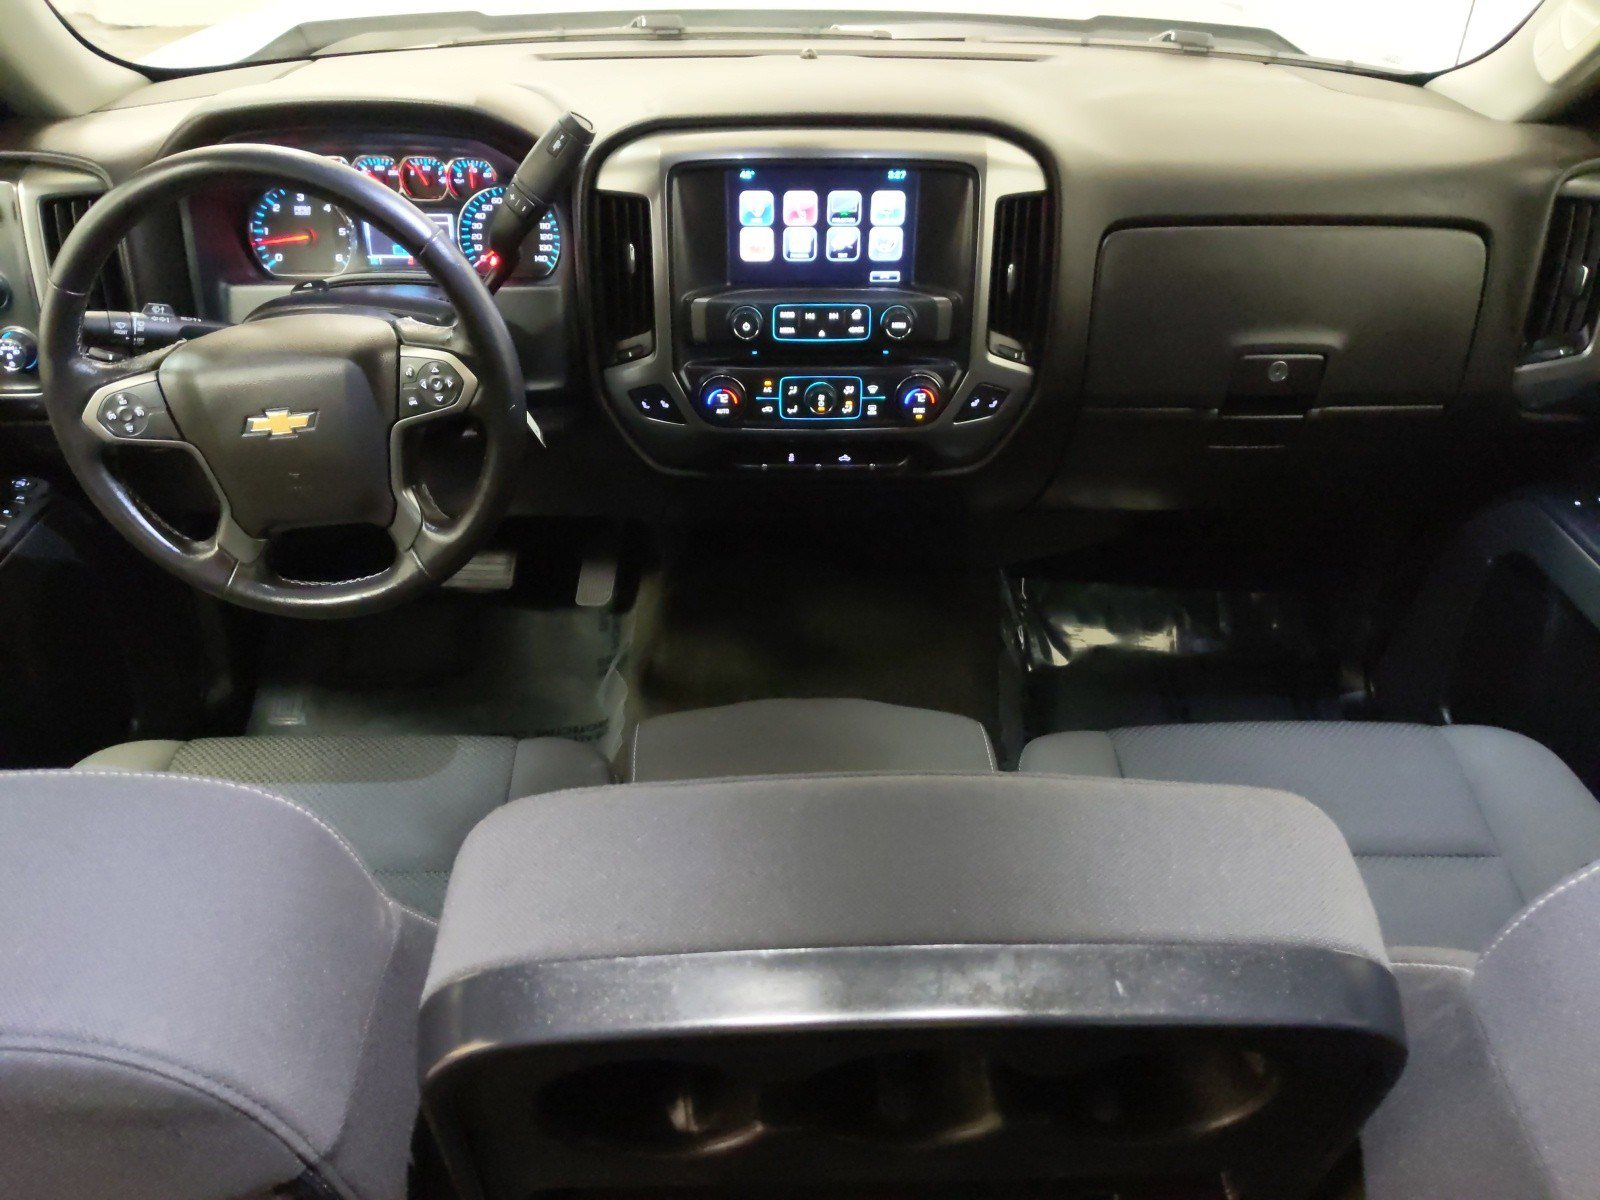 Used 2016 Chevrolet Silverado 1500 LT Extended Cab Pickup for sale in Lincoln NE